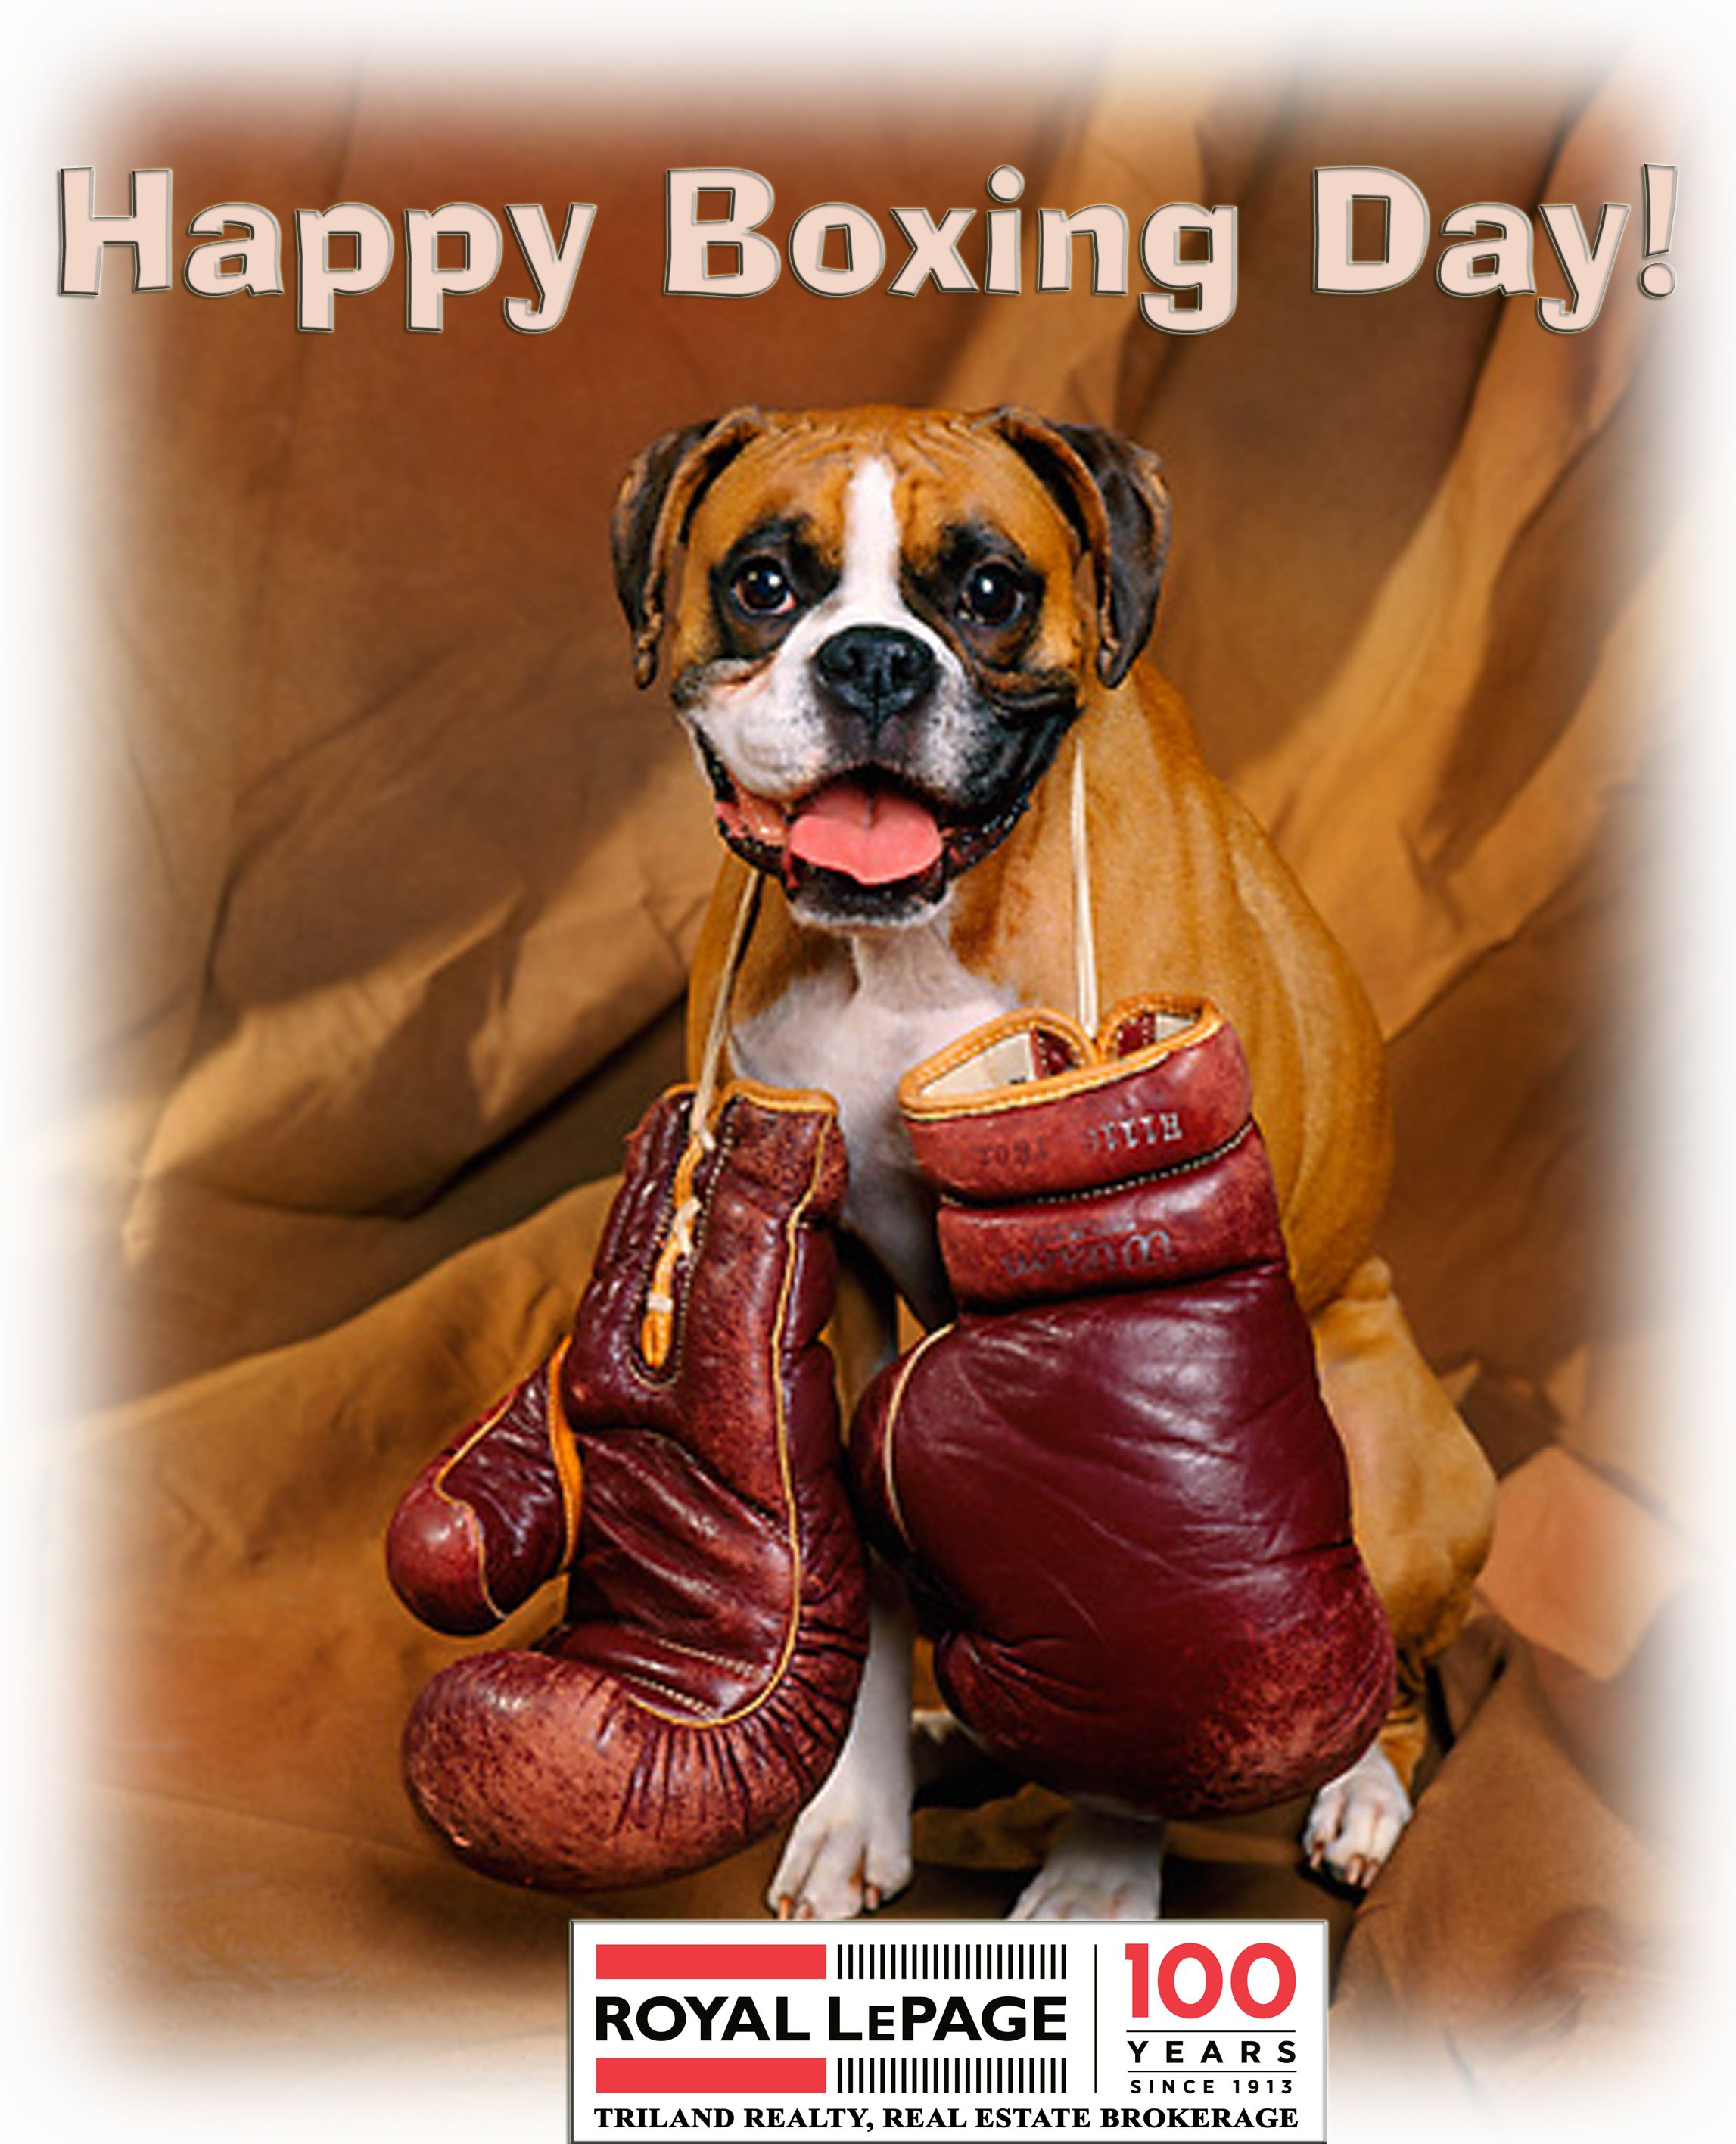 Royal LePage Triland Realty Happy Boxing Day! London